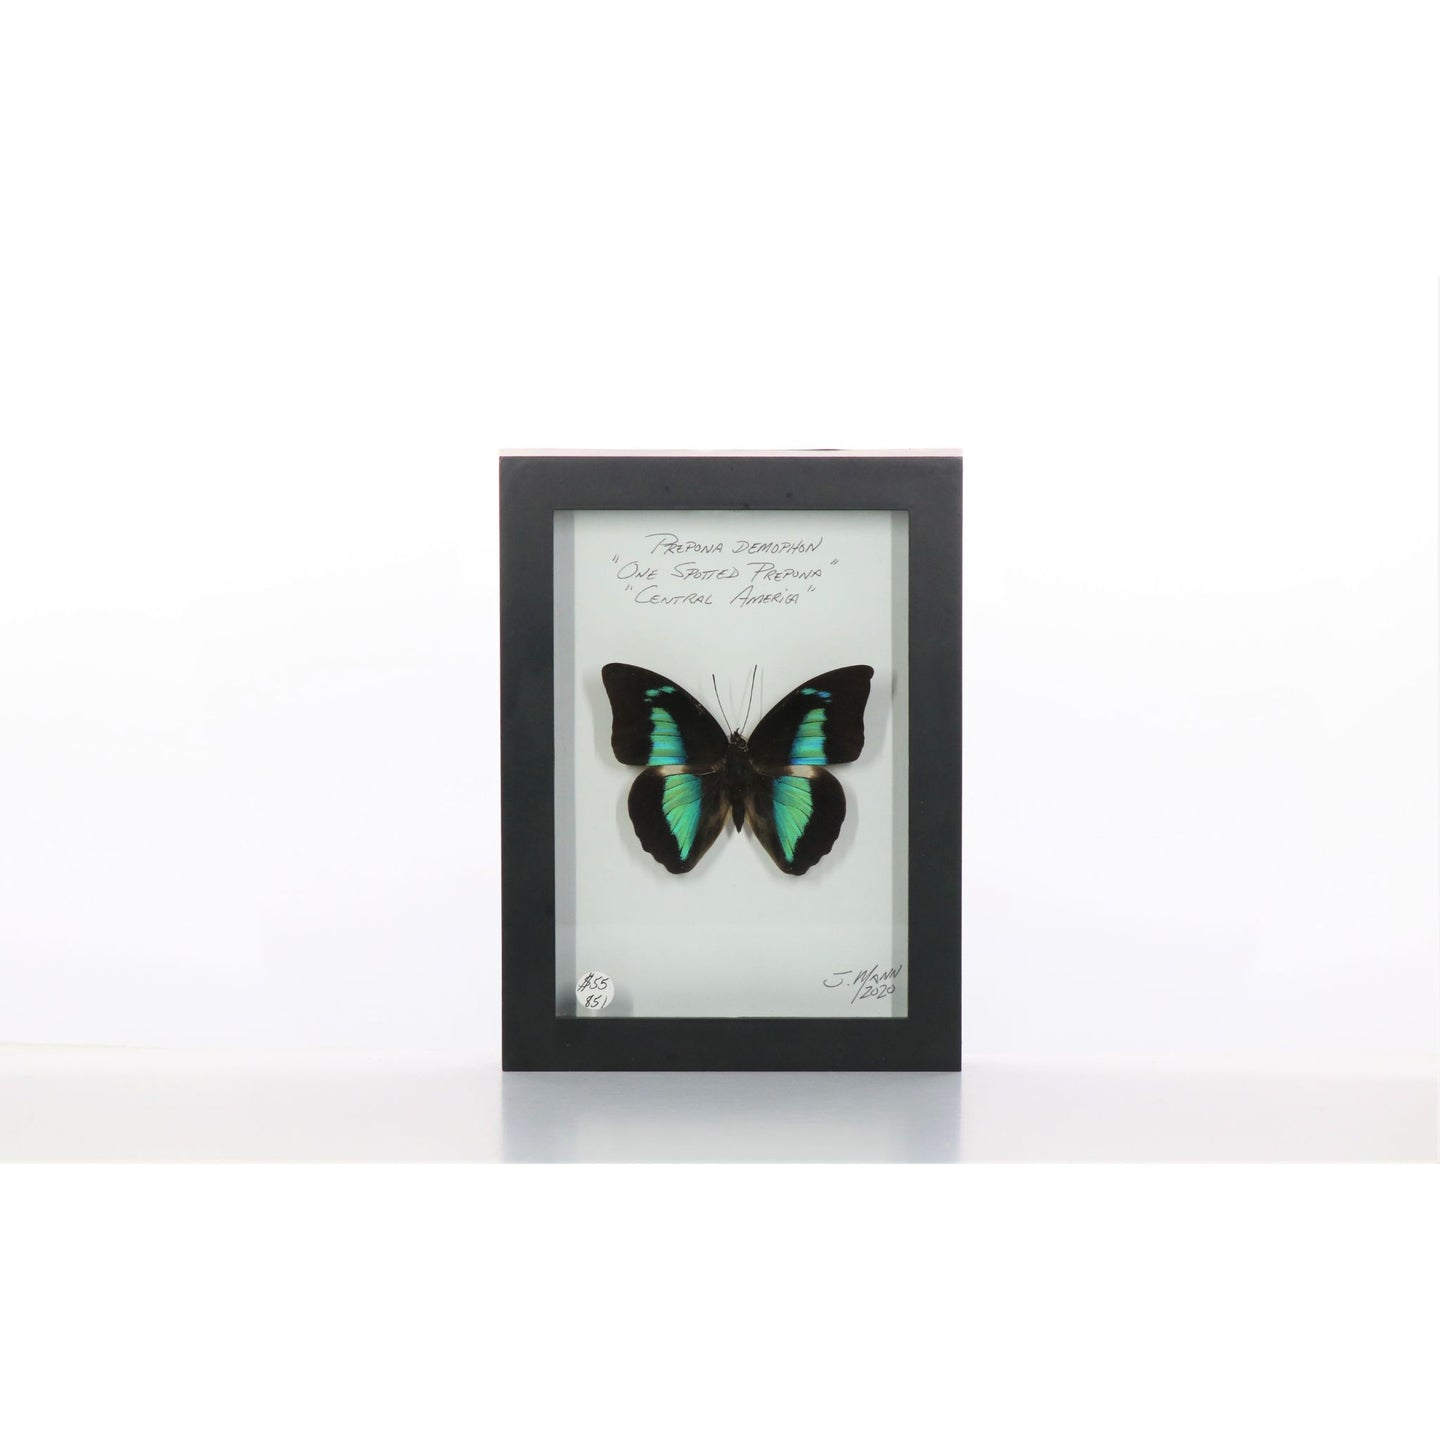 Prepona Butterfly 5x7 Black #851 Framed Art - Insecta Etcetera